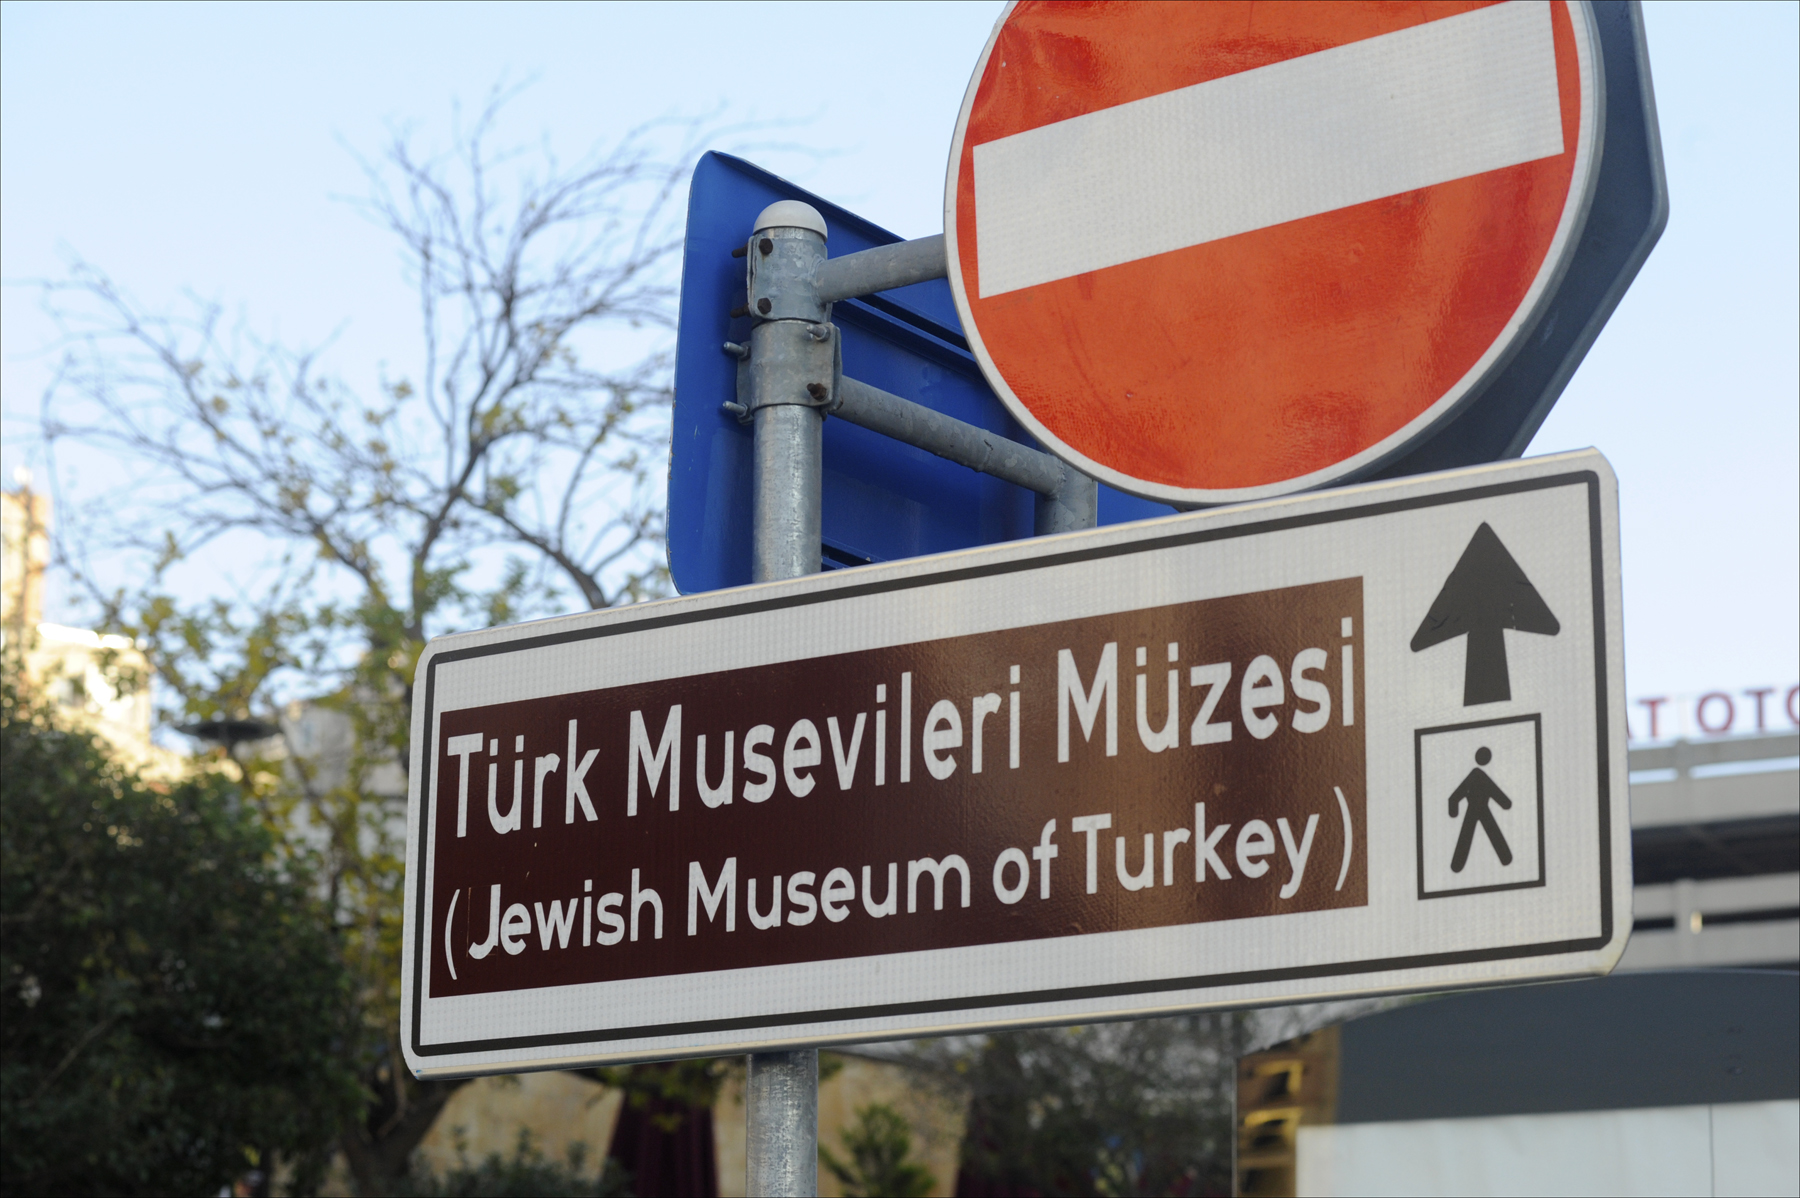 As Israel Turkey Tensions Rise So Does Foot Traffic To Istanbuls